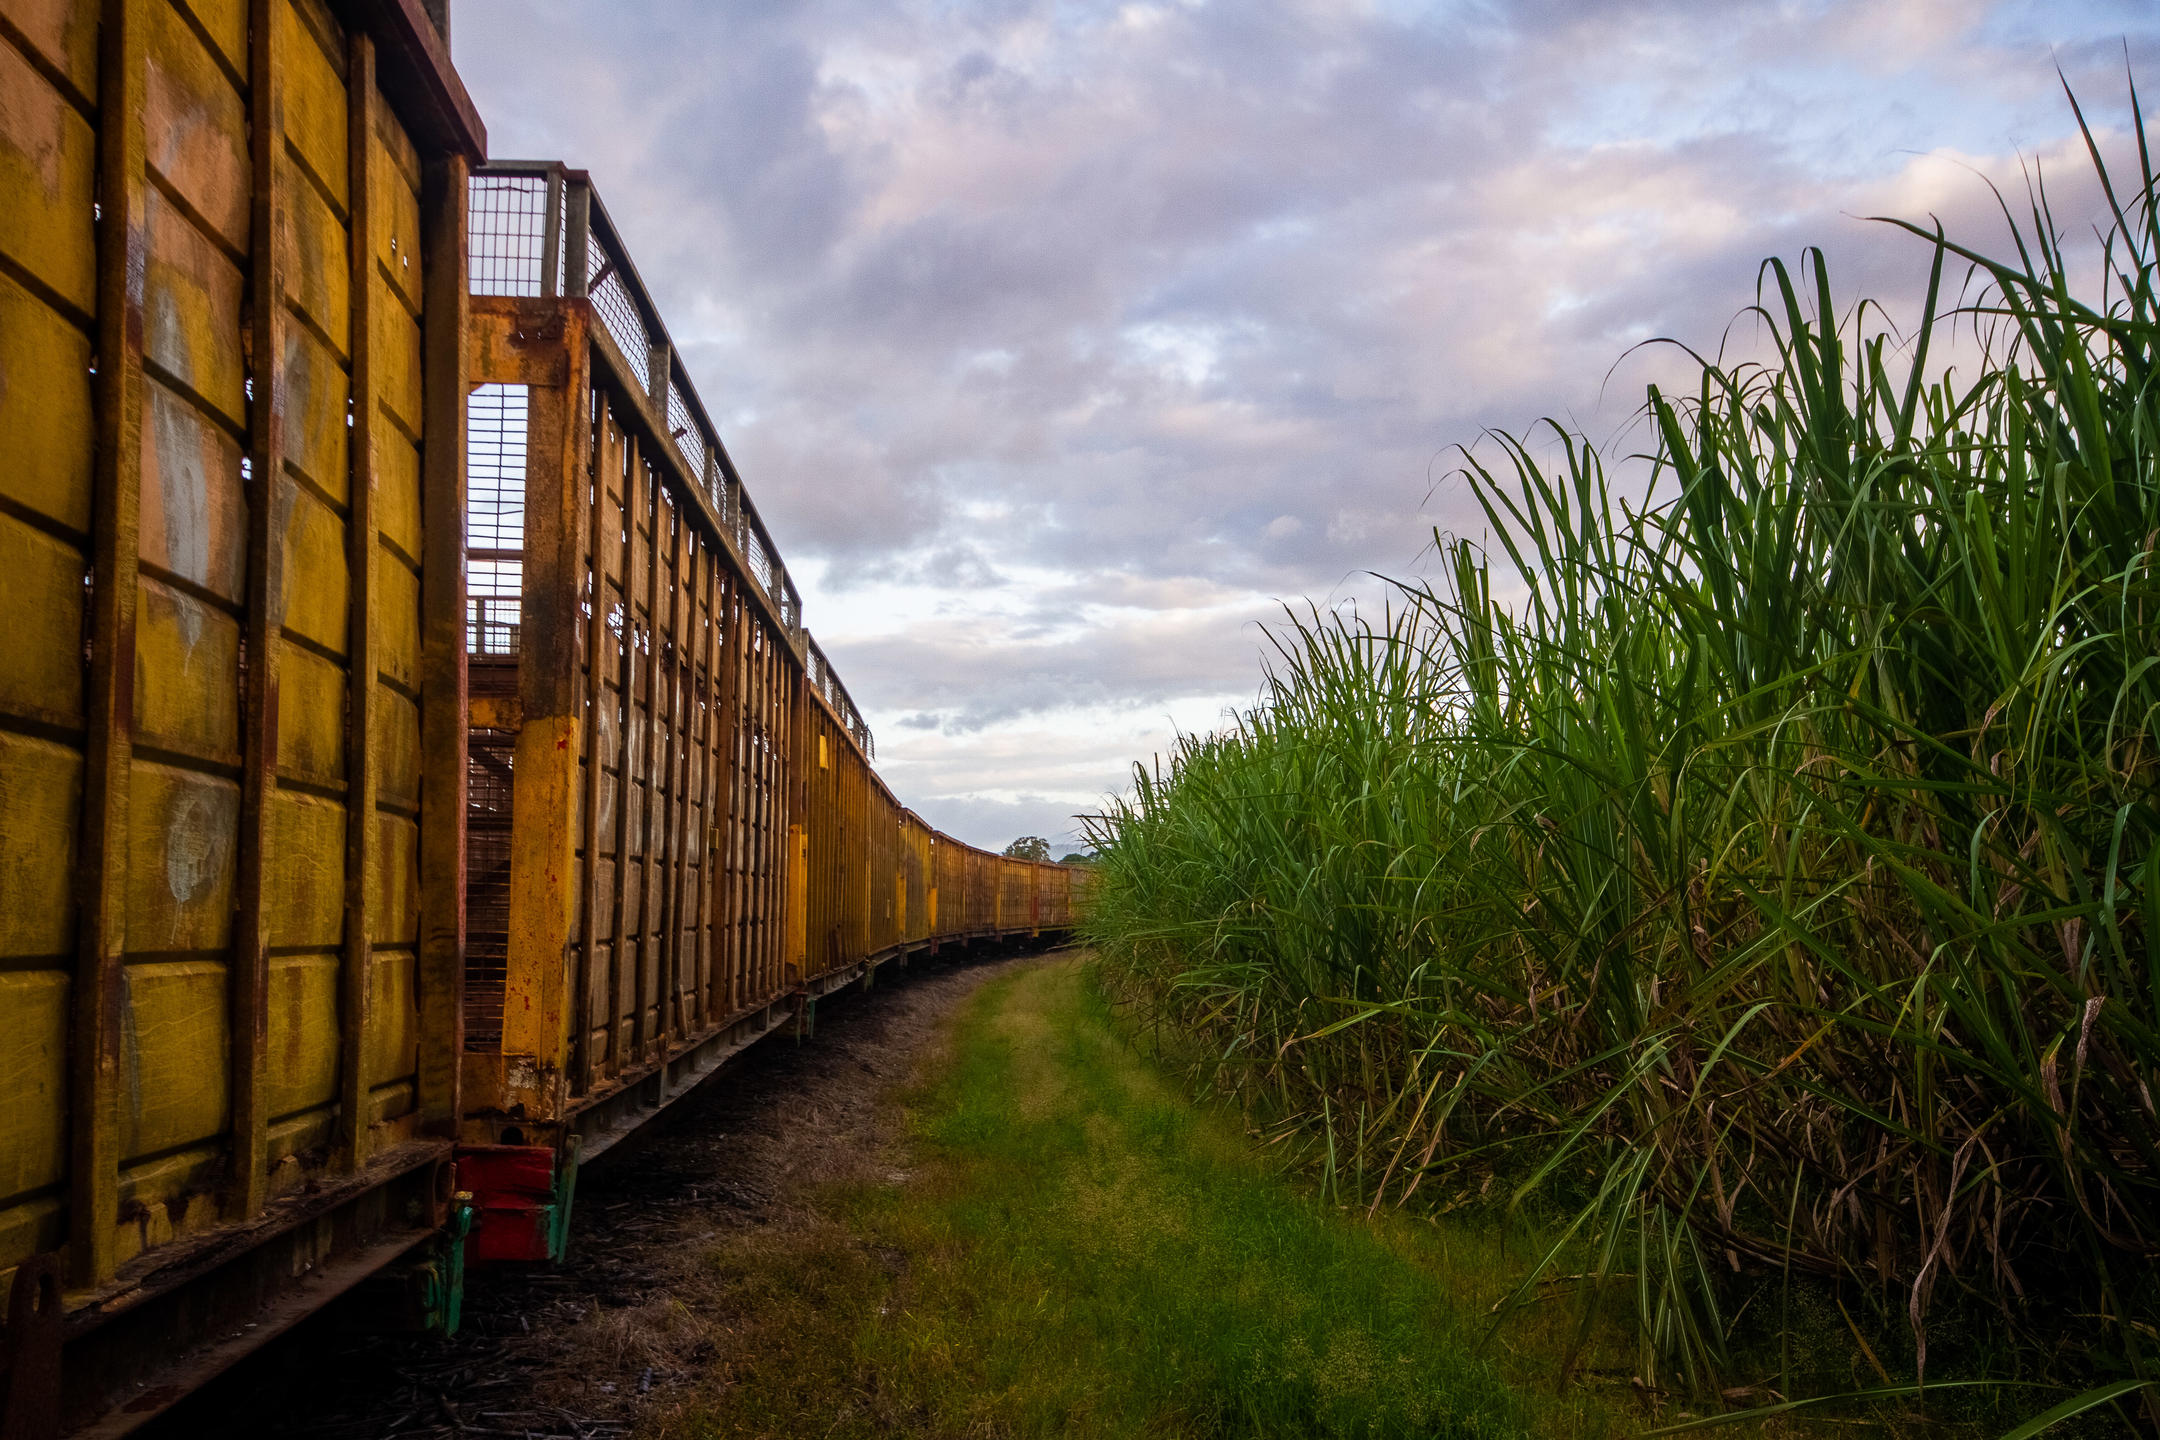 An empty cane train sitting next to a sugar can field which is ready for harvest.